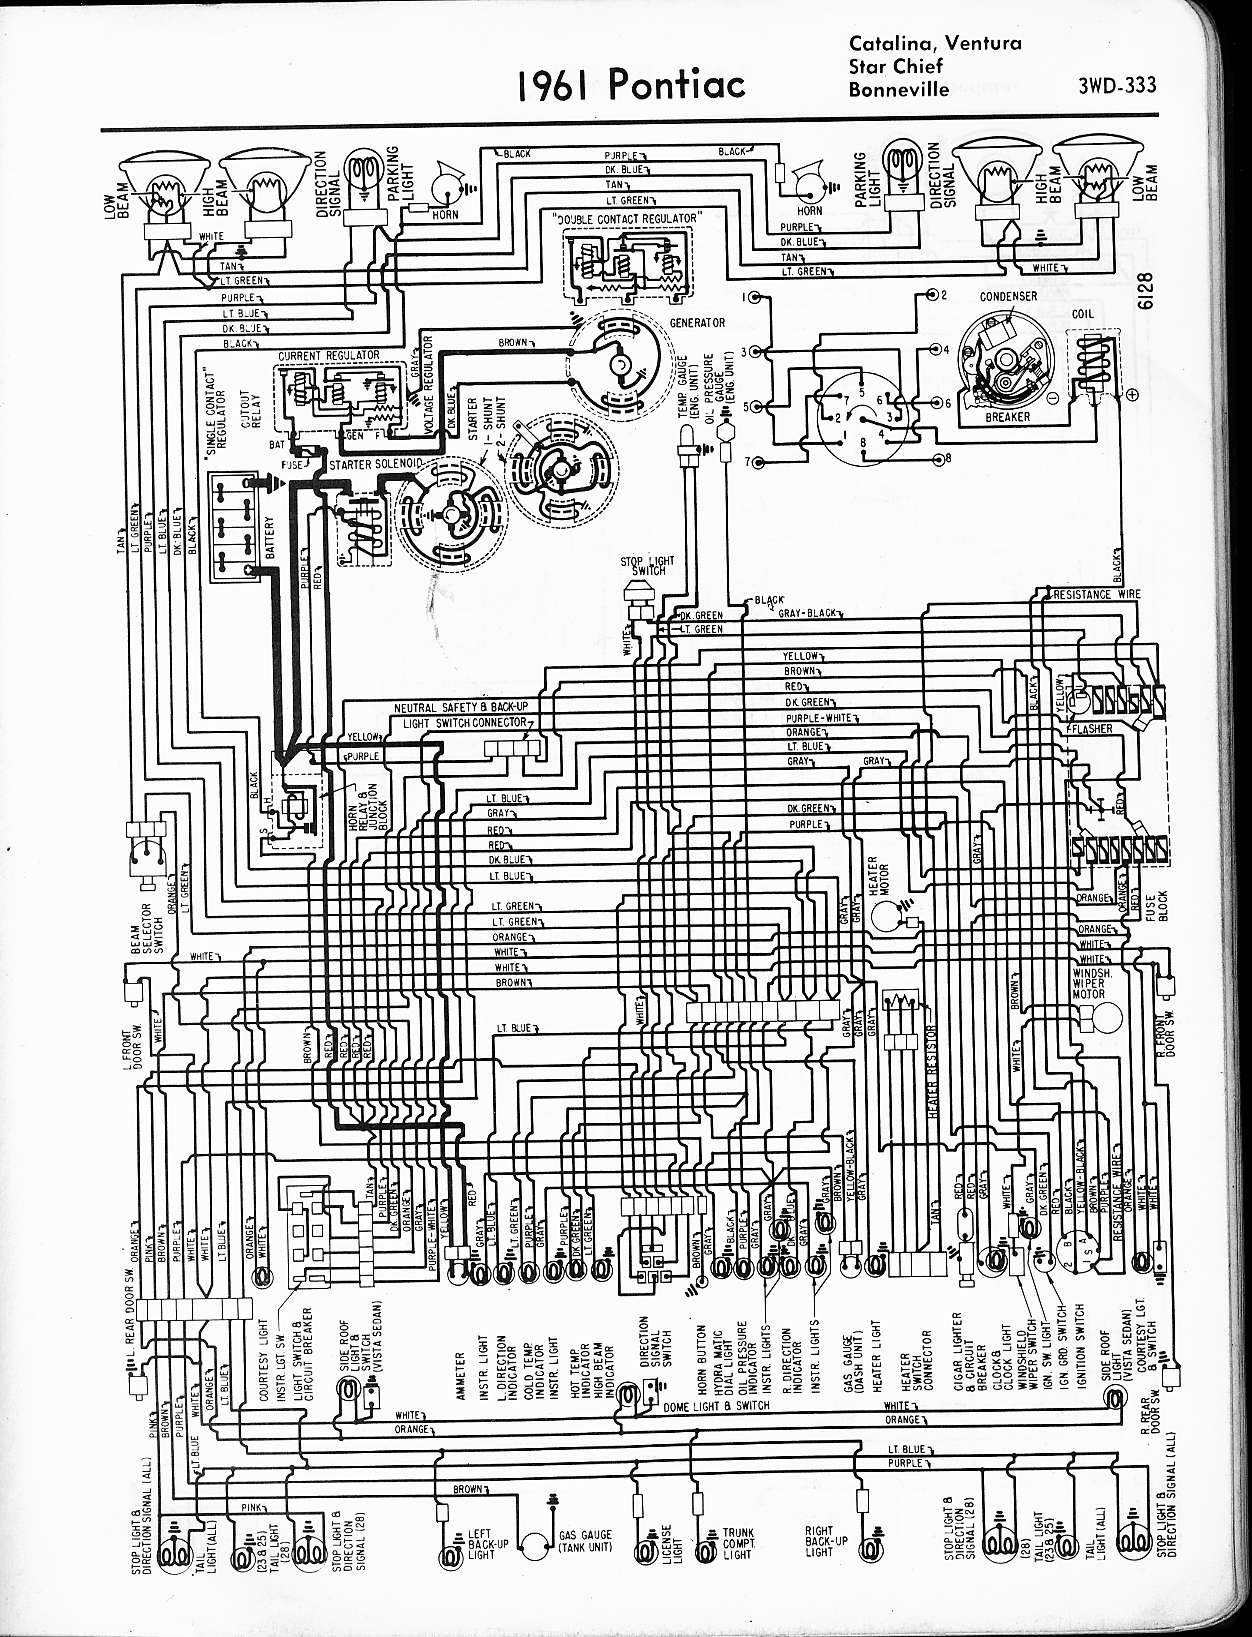 1958 Pontiac Wiring Diagram | Wiring Diagram on 1963 pontiac exhaust system, 1963 pontiac interior, 1963 pontiac transaxle, 1963 pontiac quarter panels,